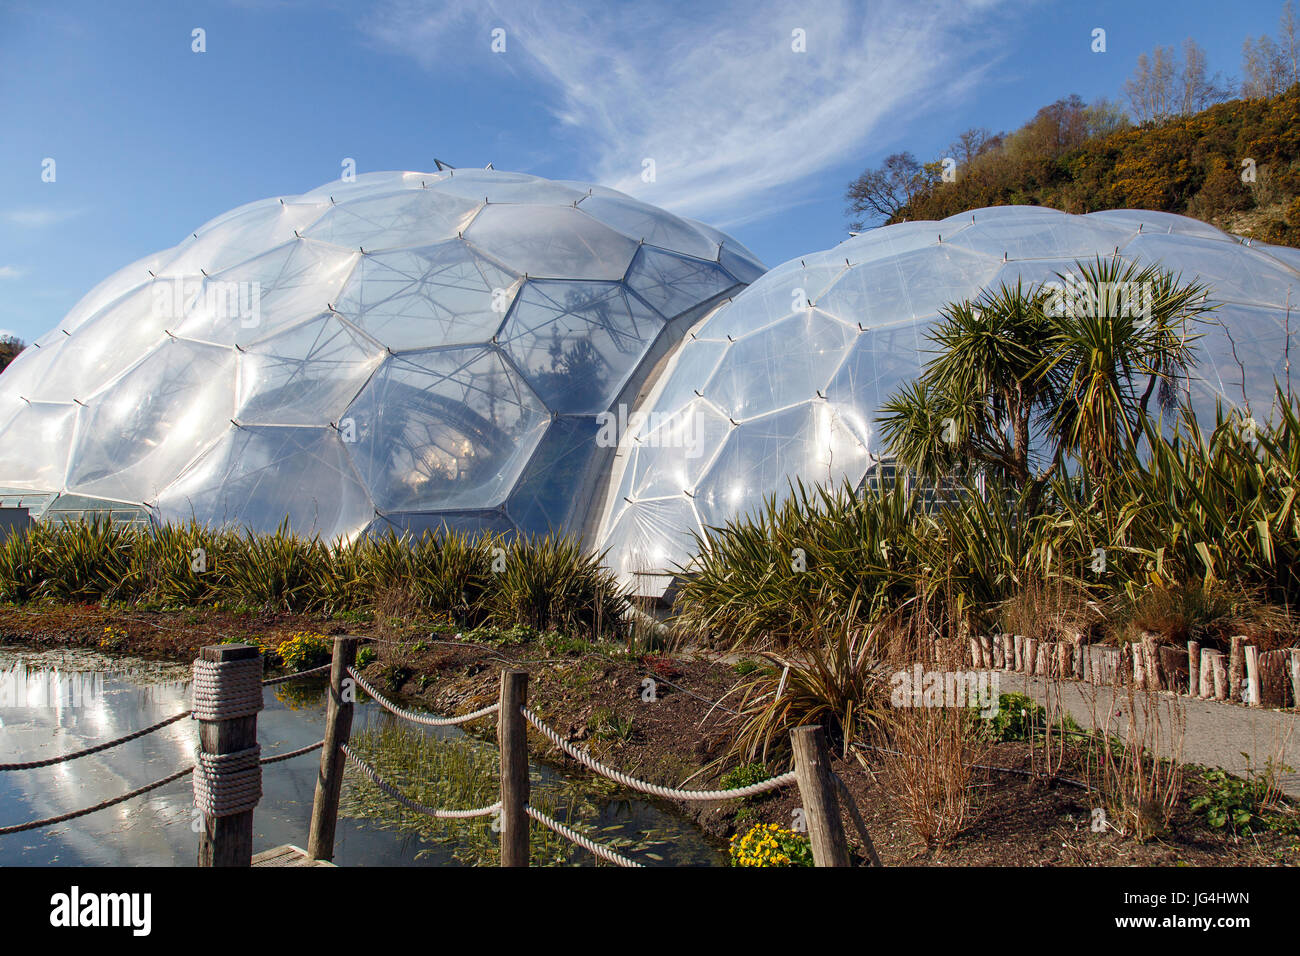 Eden Project - Biomes - Stock Image